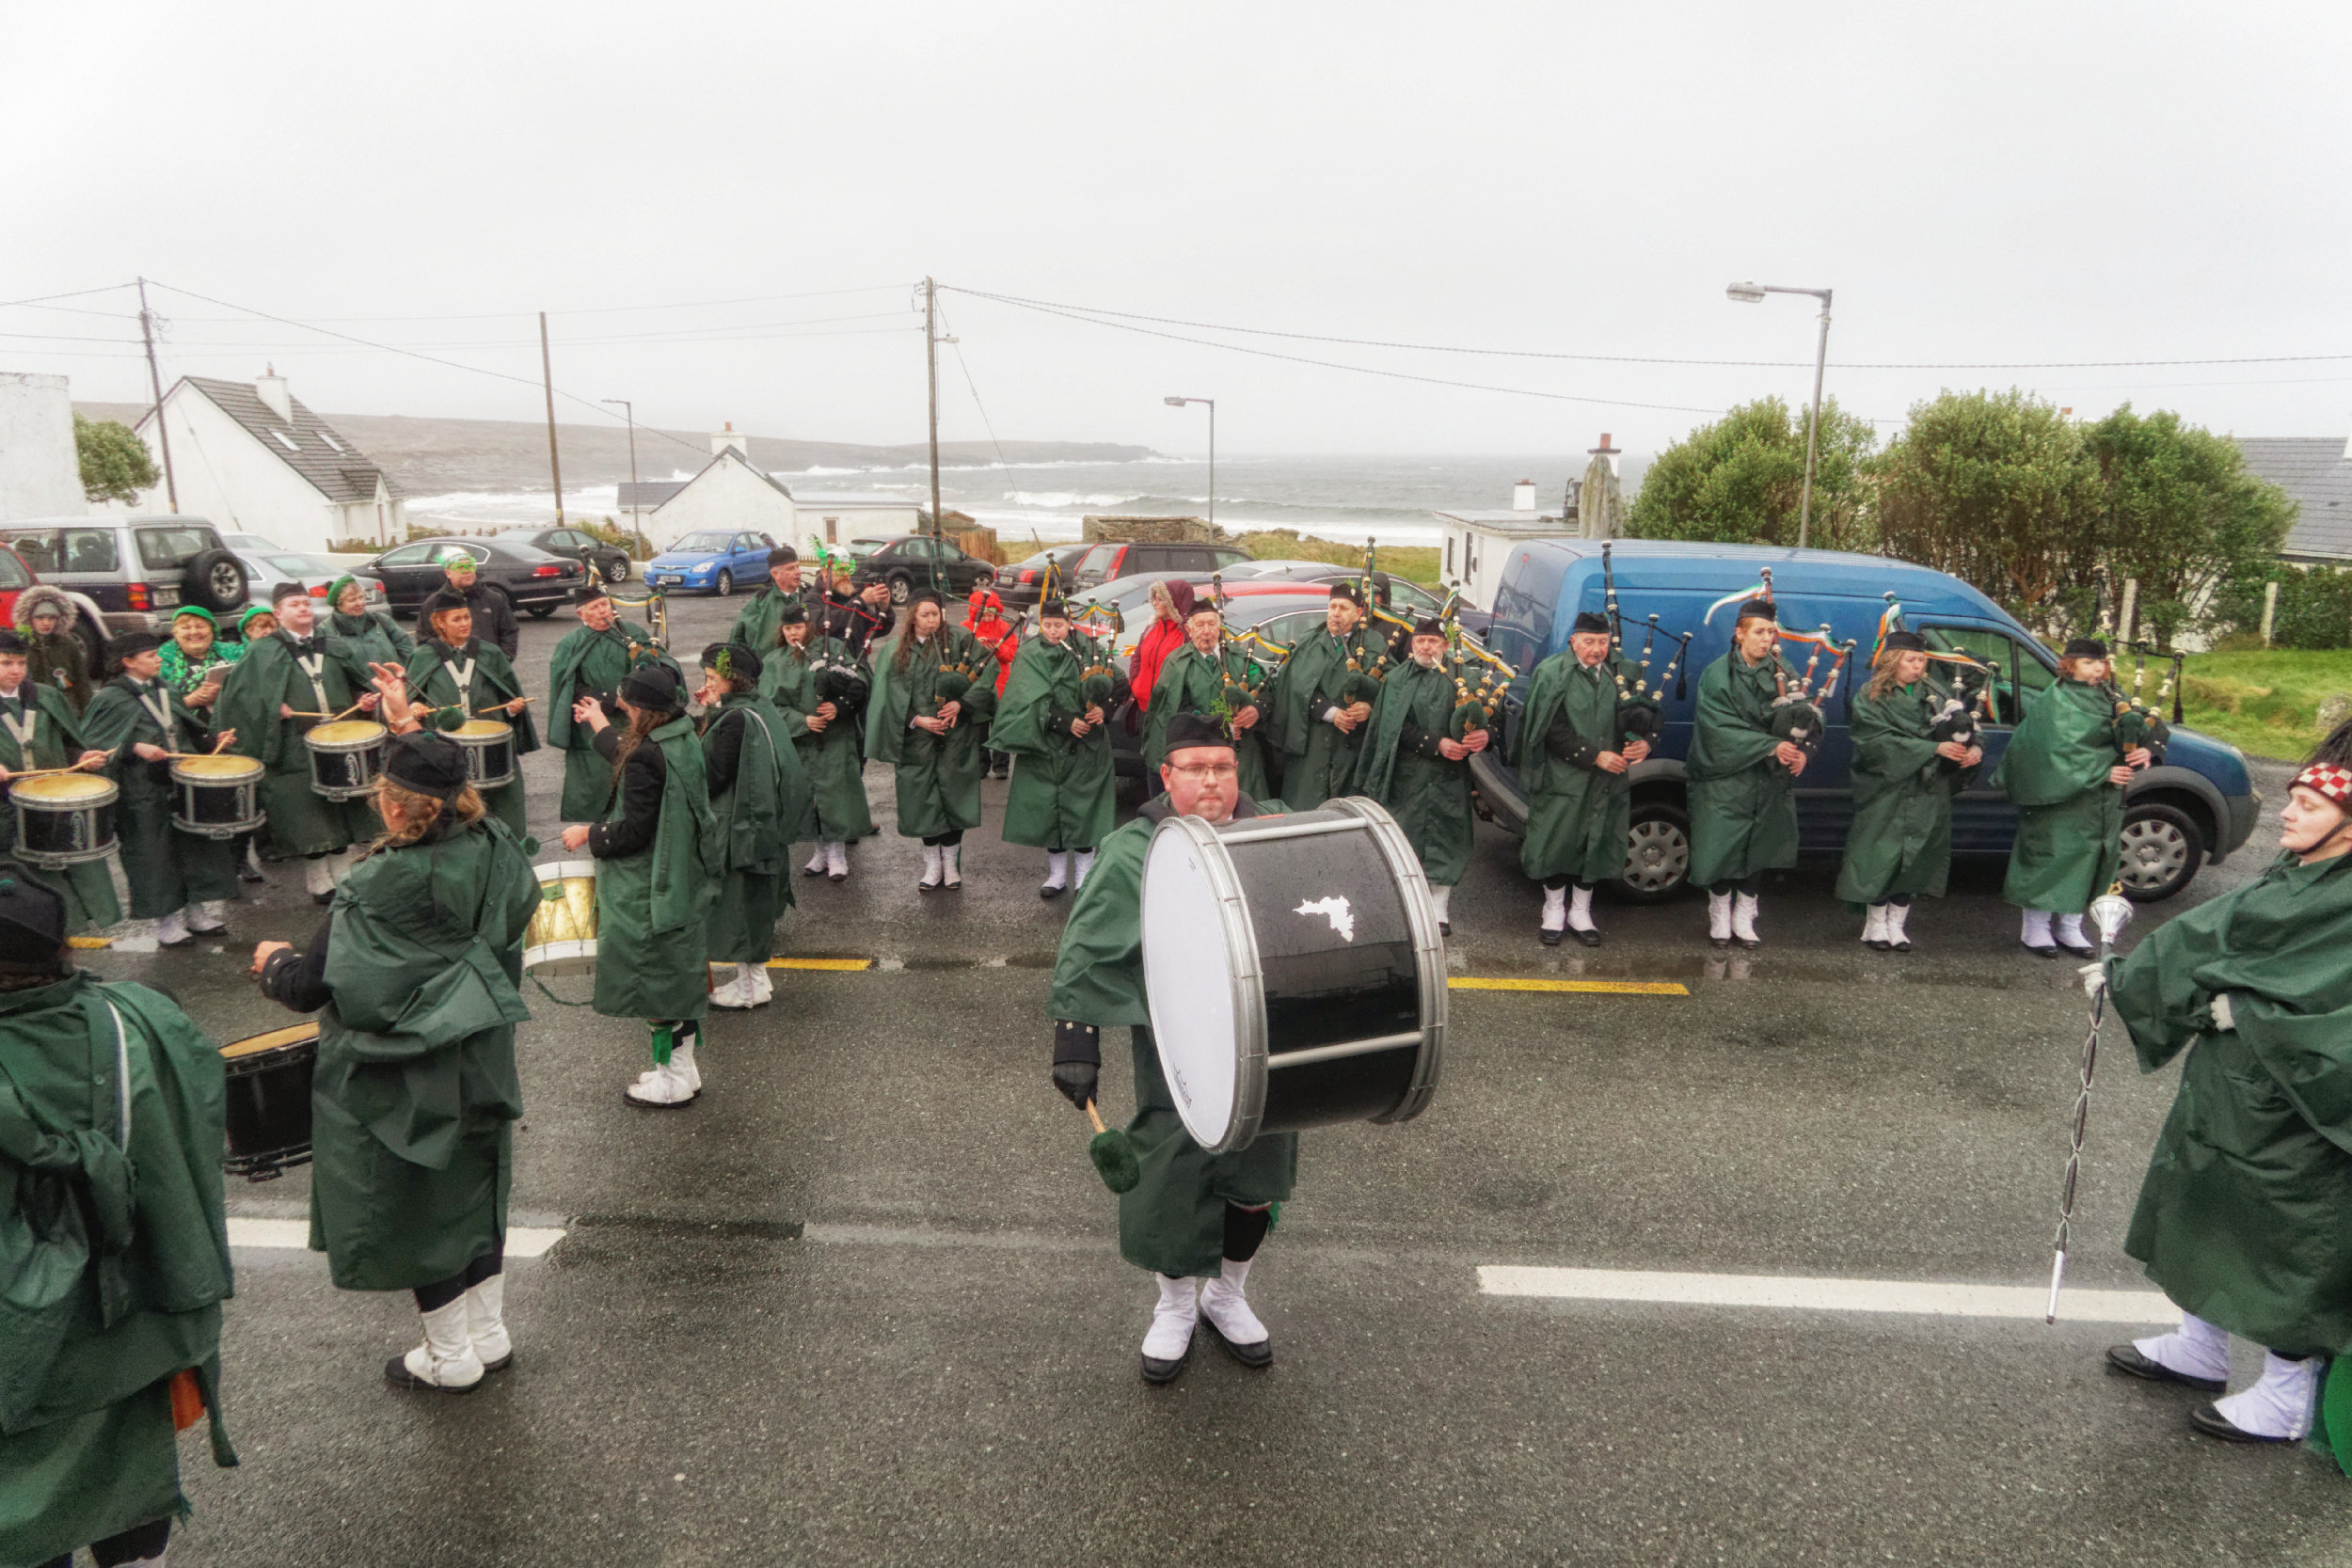 Dooagh Pipe Band on St. Patrick's Day 2017 in Dooagh